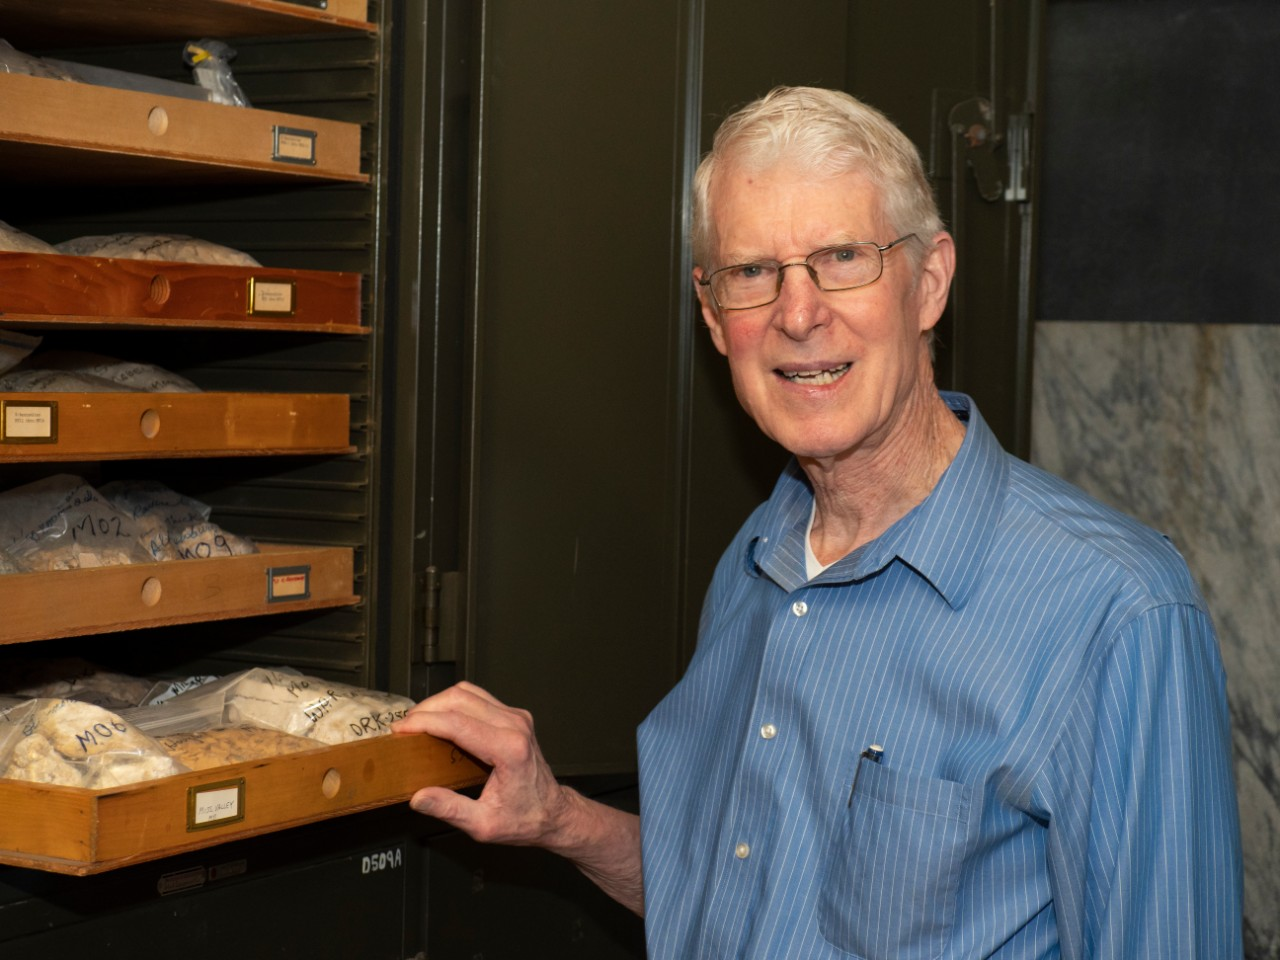 UC geology professor emeritus Warren Huff stands smiling next to a cabinet full of geology samples.